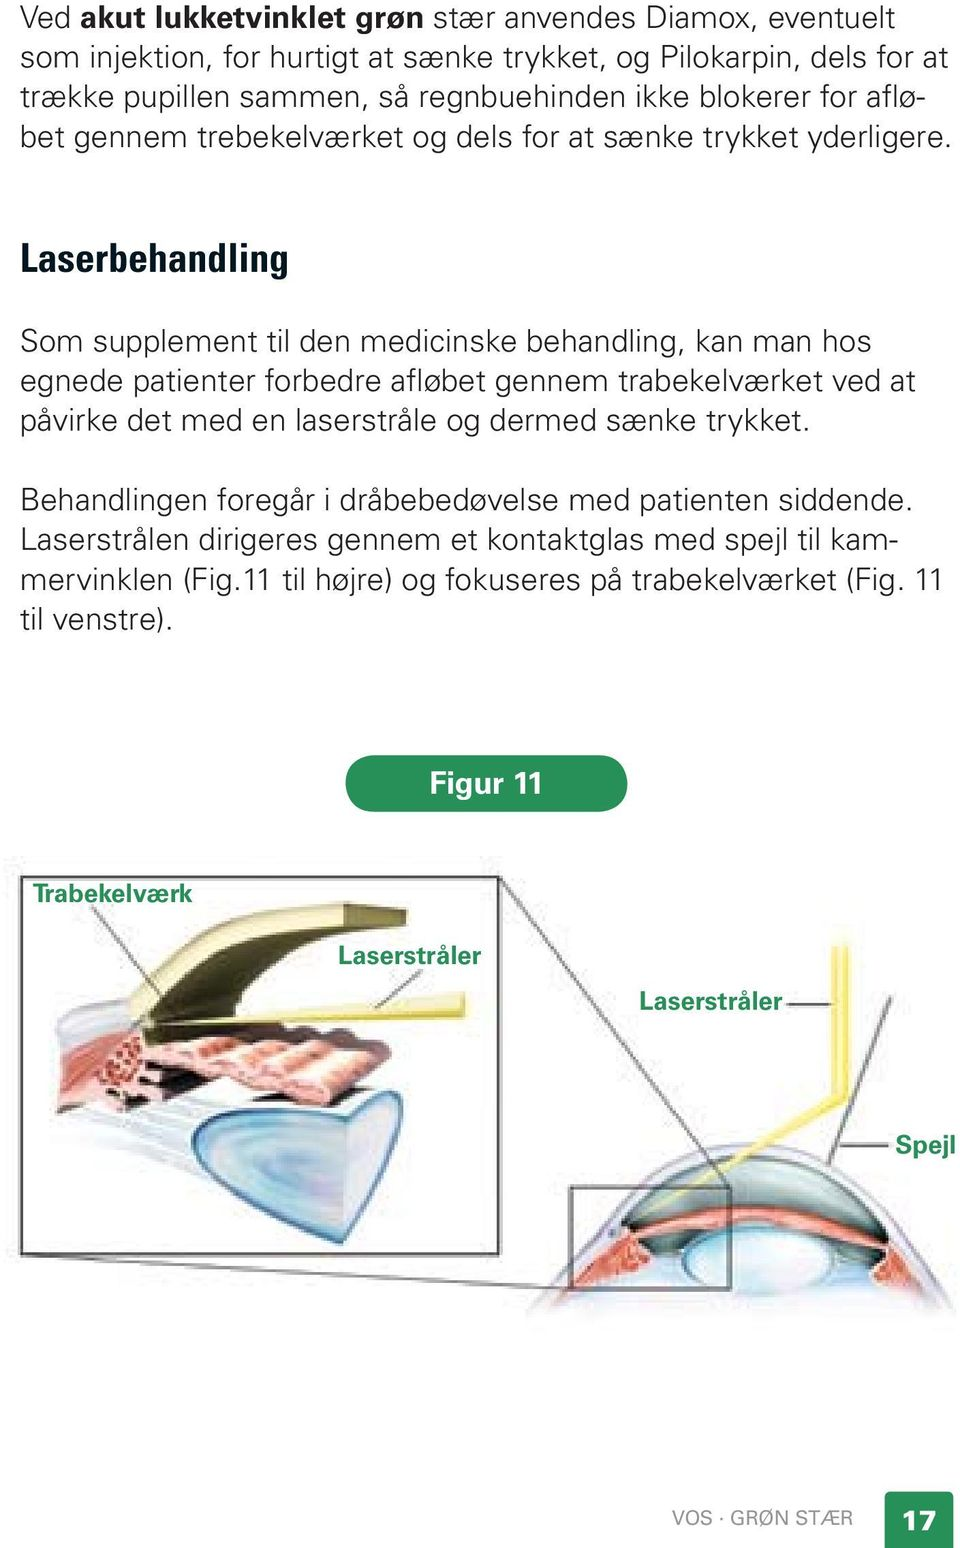 Laserbehandling Som supplement til den medicinske behandling, kan man hos egnede patienter forbedre afløbet gennem trabekelværket ved at påvirke det med en laserstråle og dermed sænke